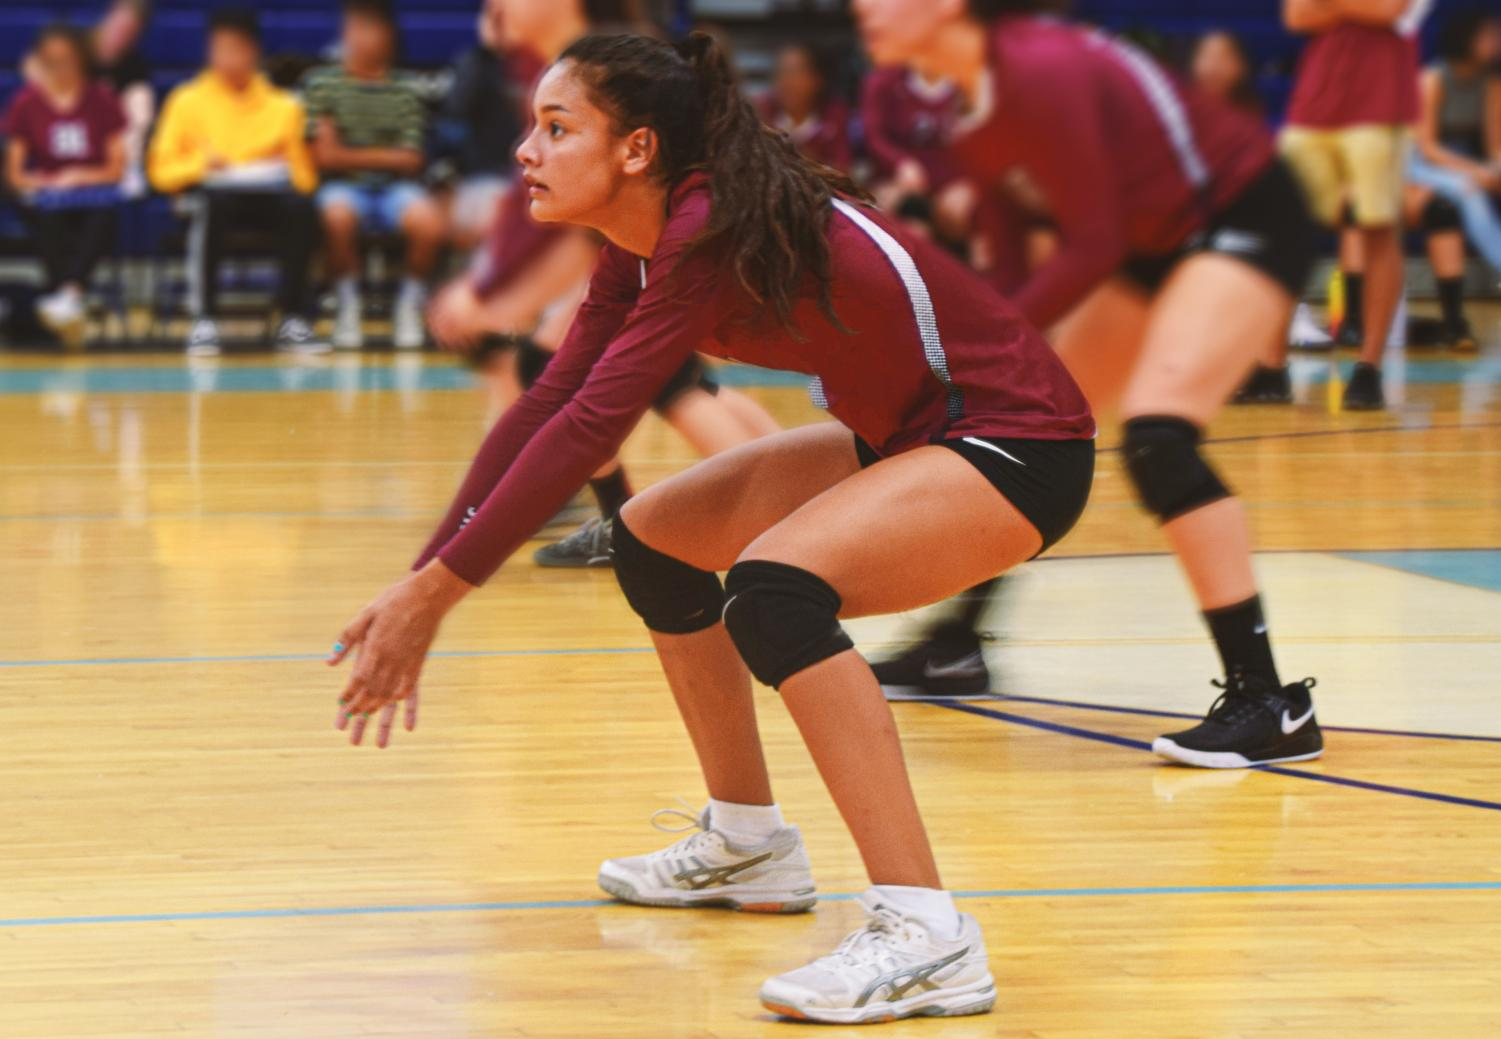 Girls Volleyball Team Triumphantly Brings Home A Winning Lead Record